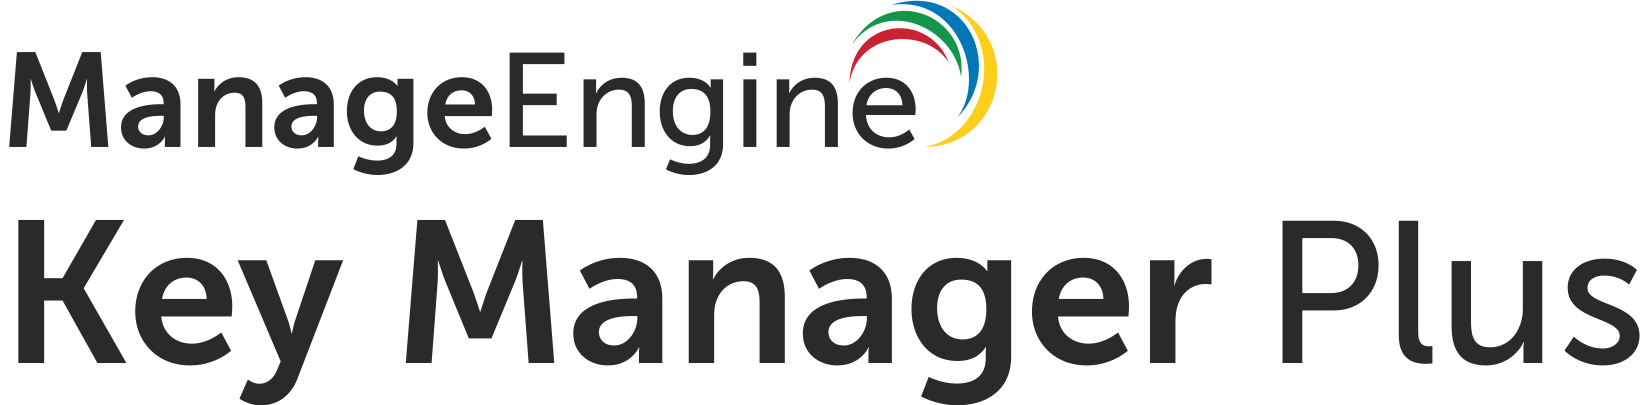 www.manageengine.com